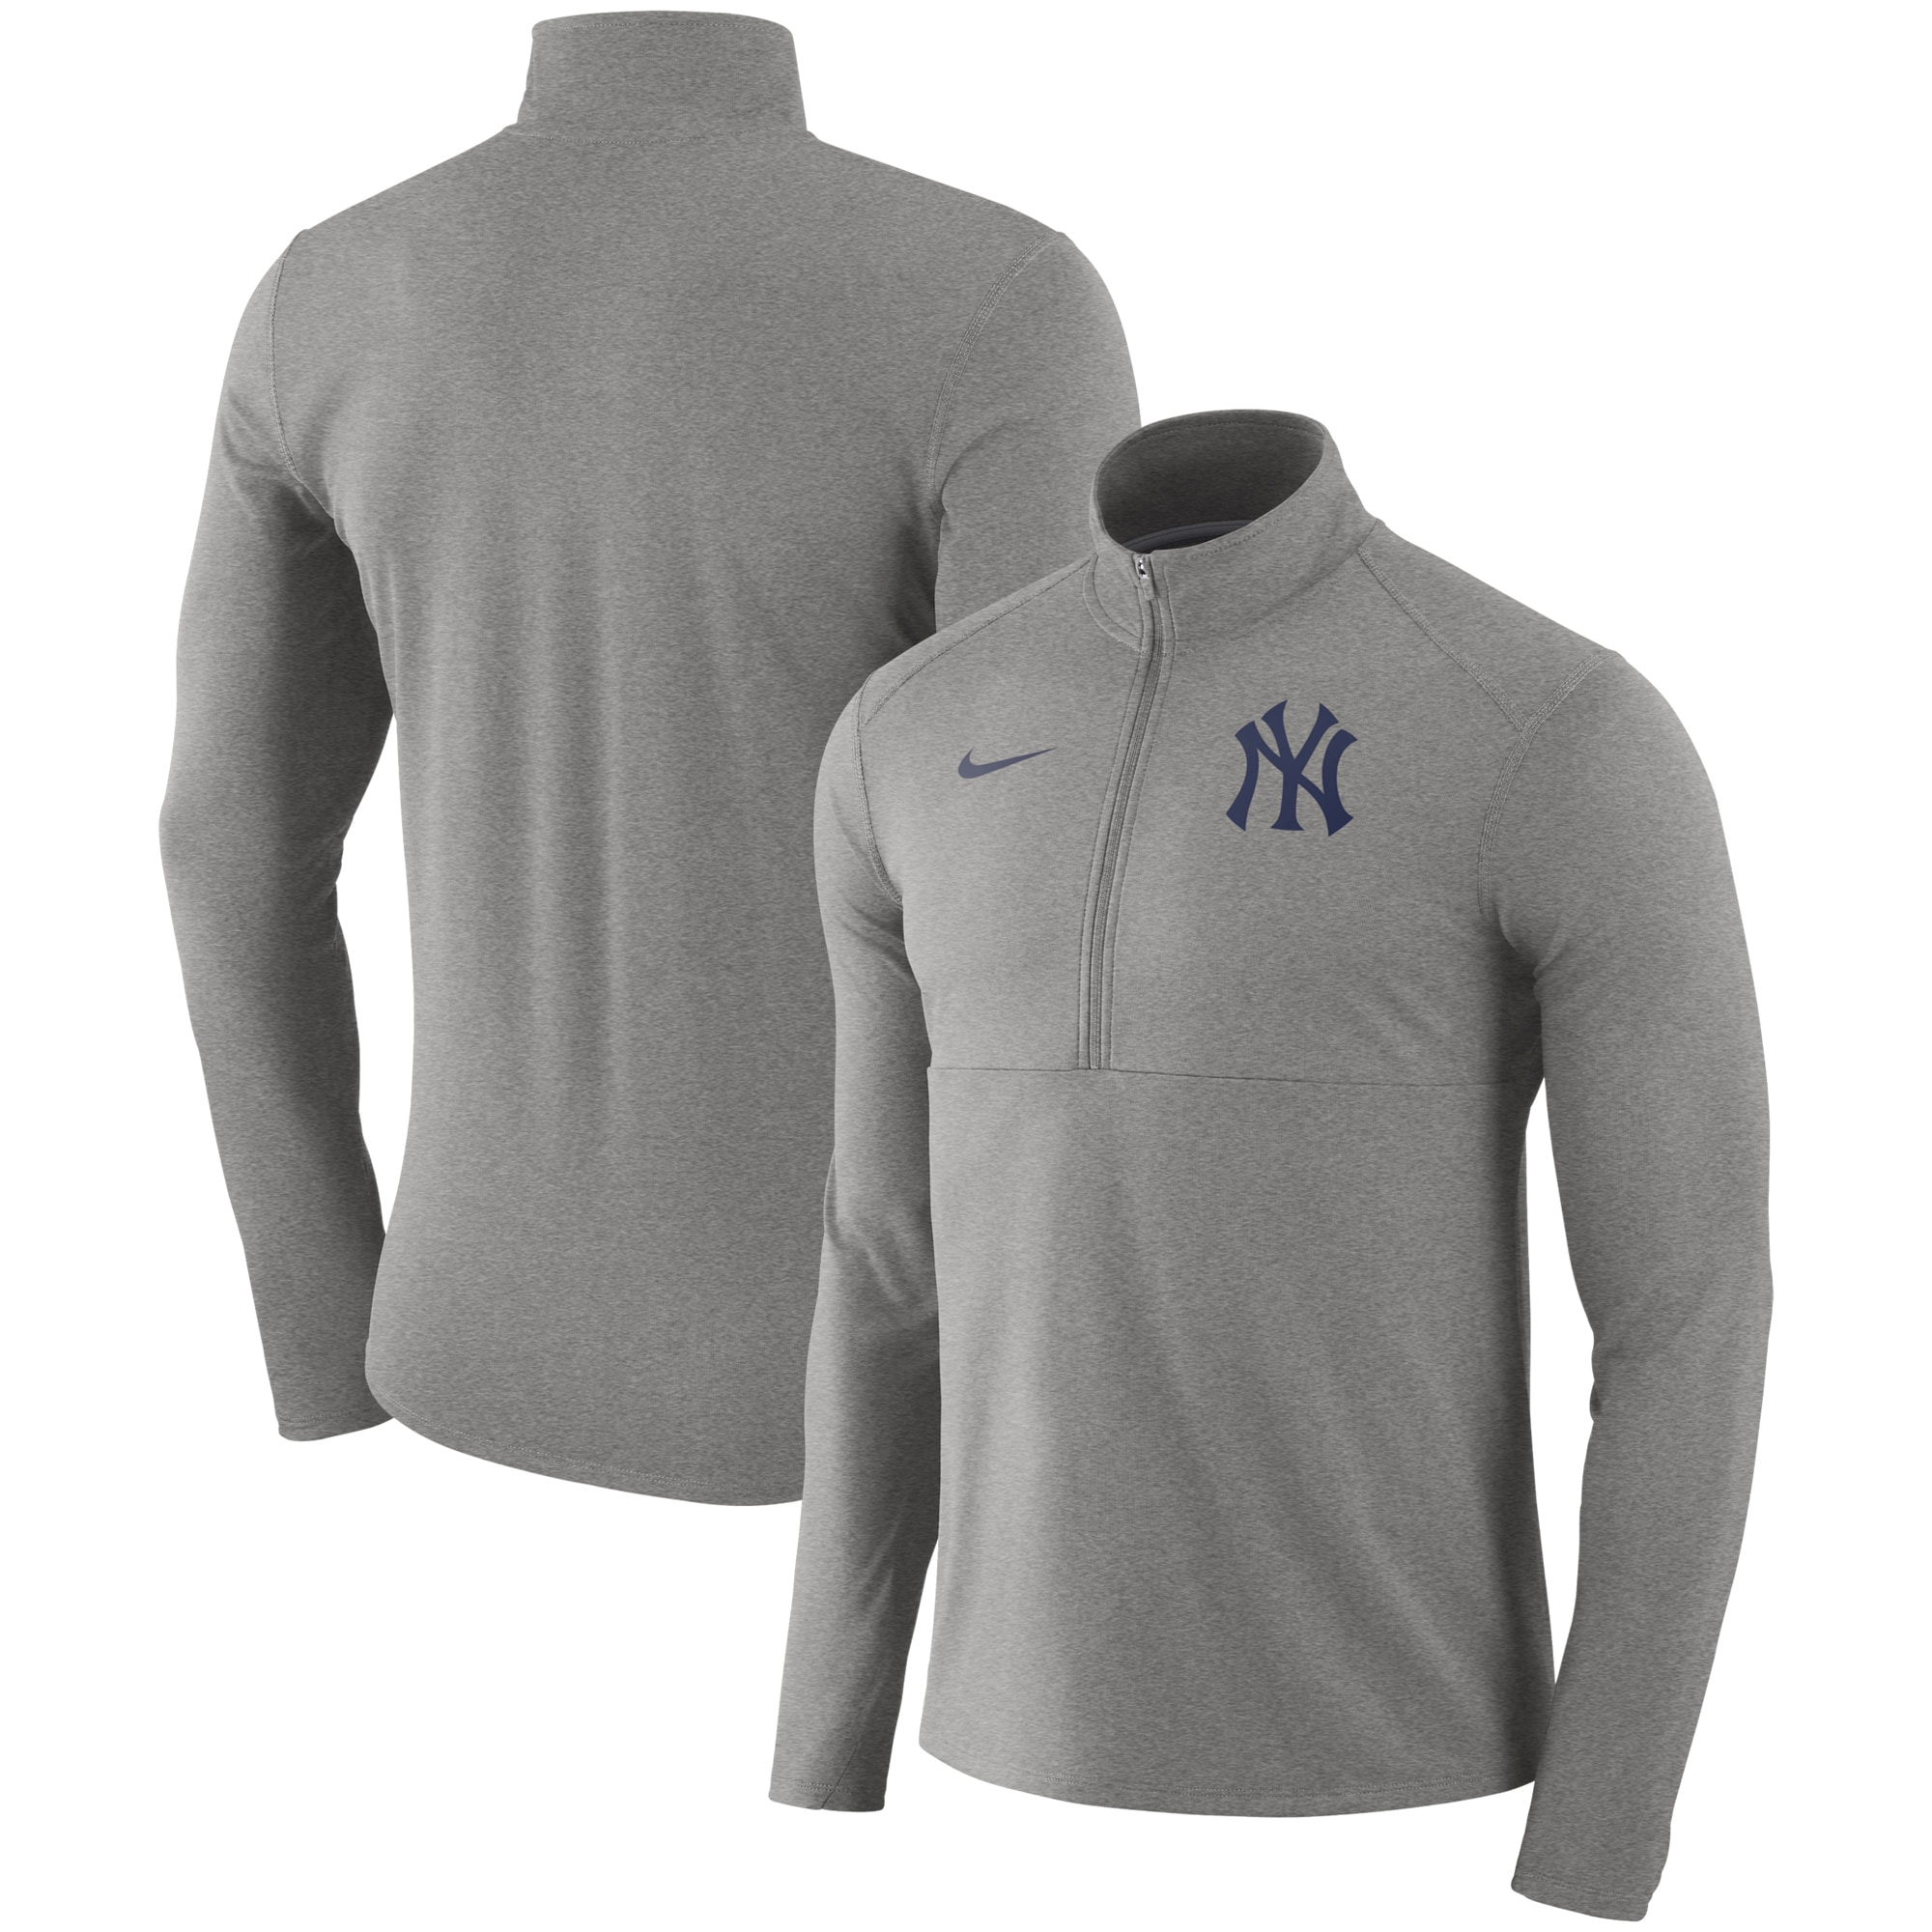 New York Yankees Nike Dry Element Half-Zip Performance Pullover - Gray